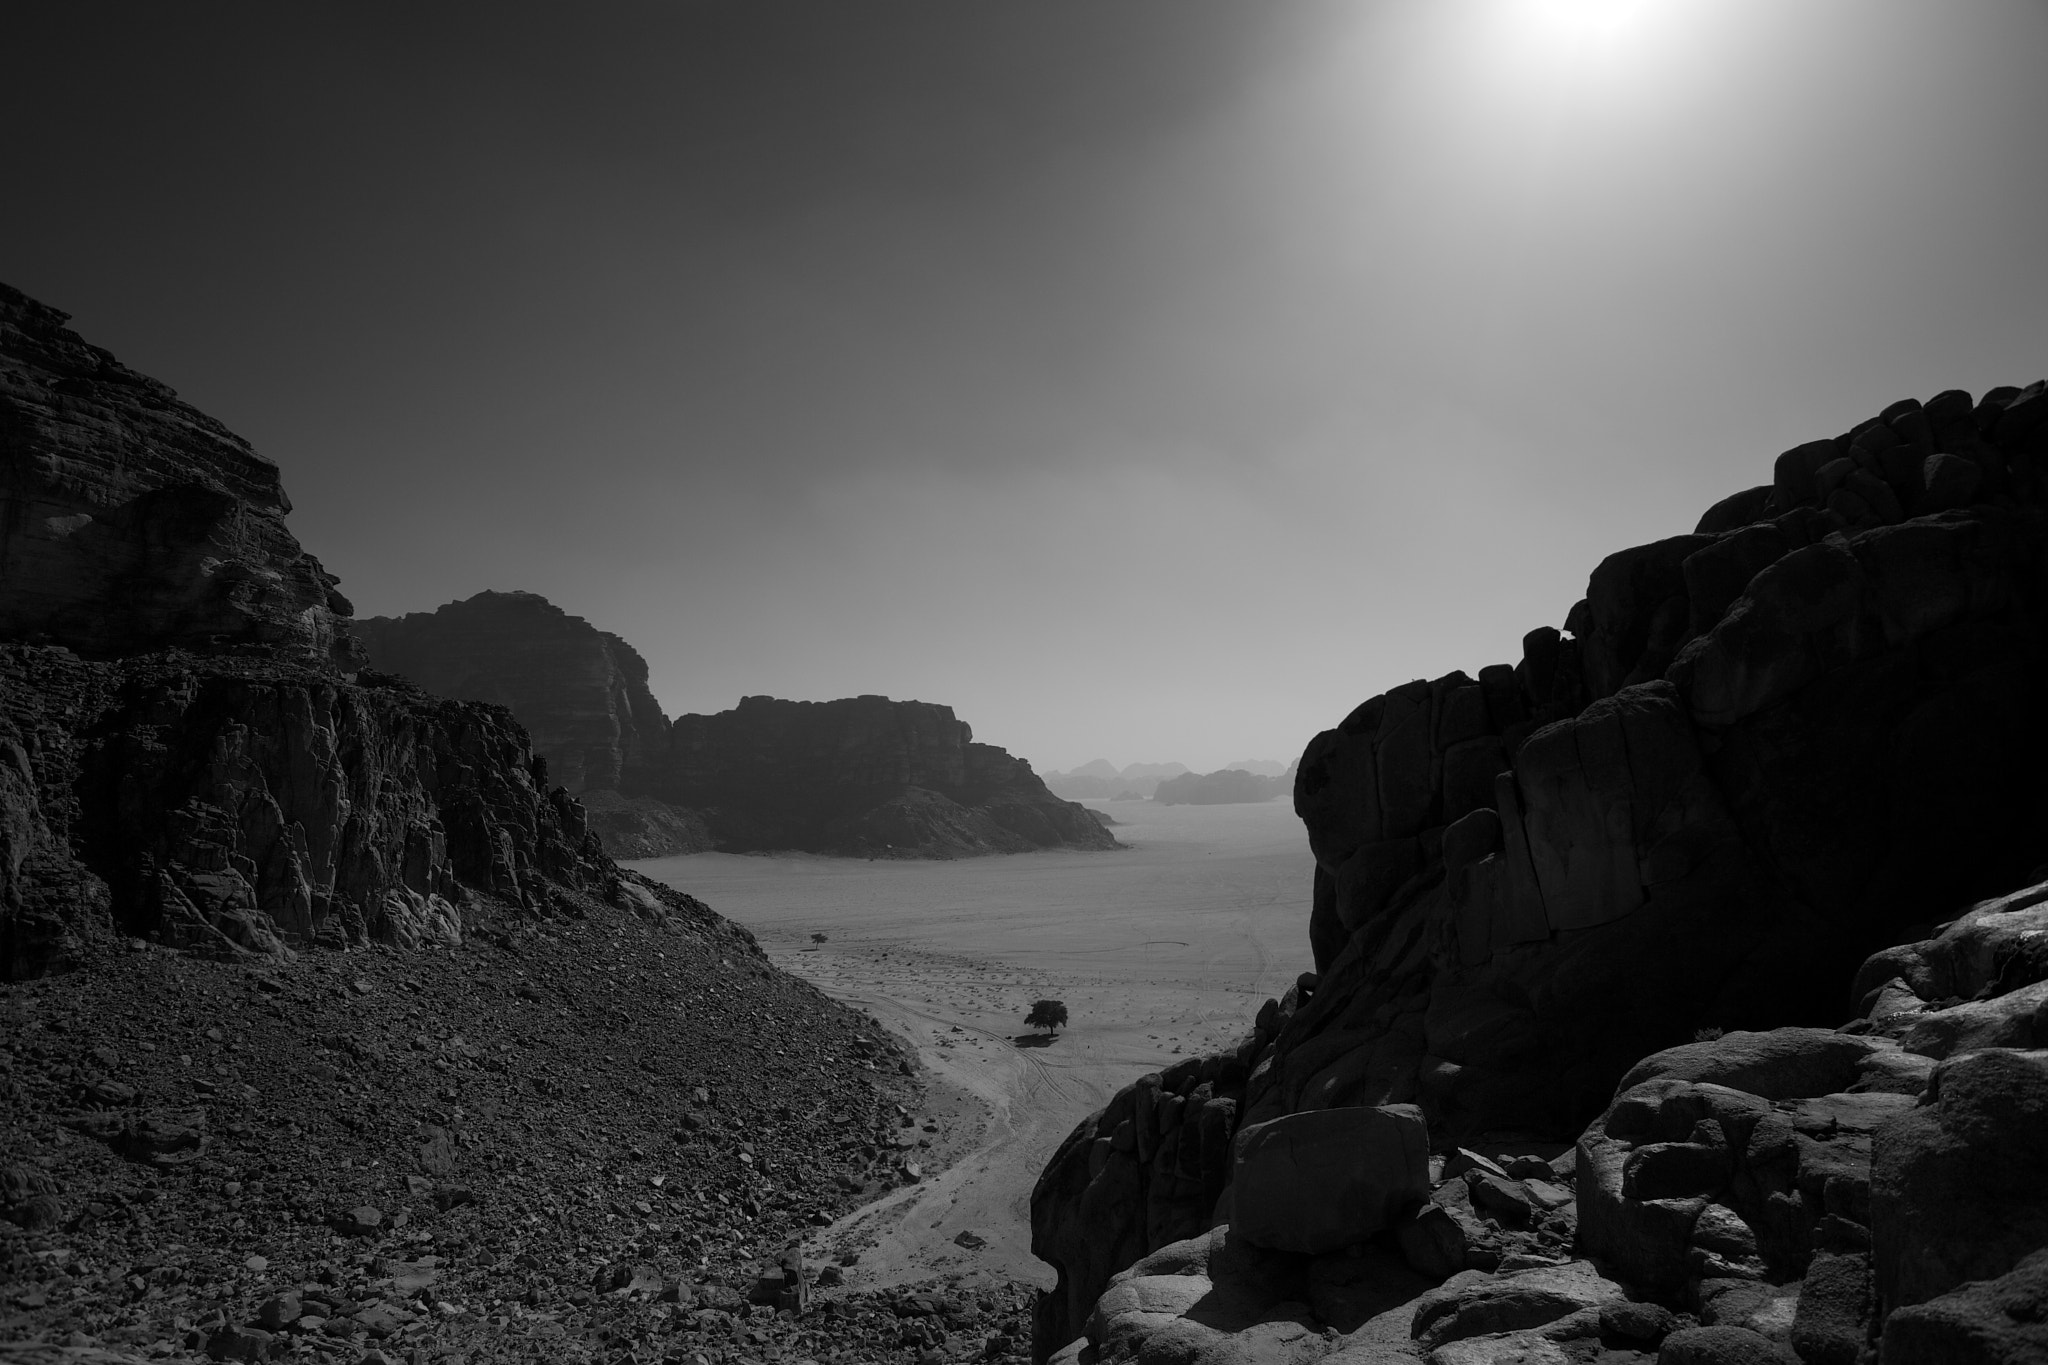 Photograph Wadi Rum by Jethro Stamps on 500px